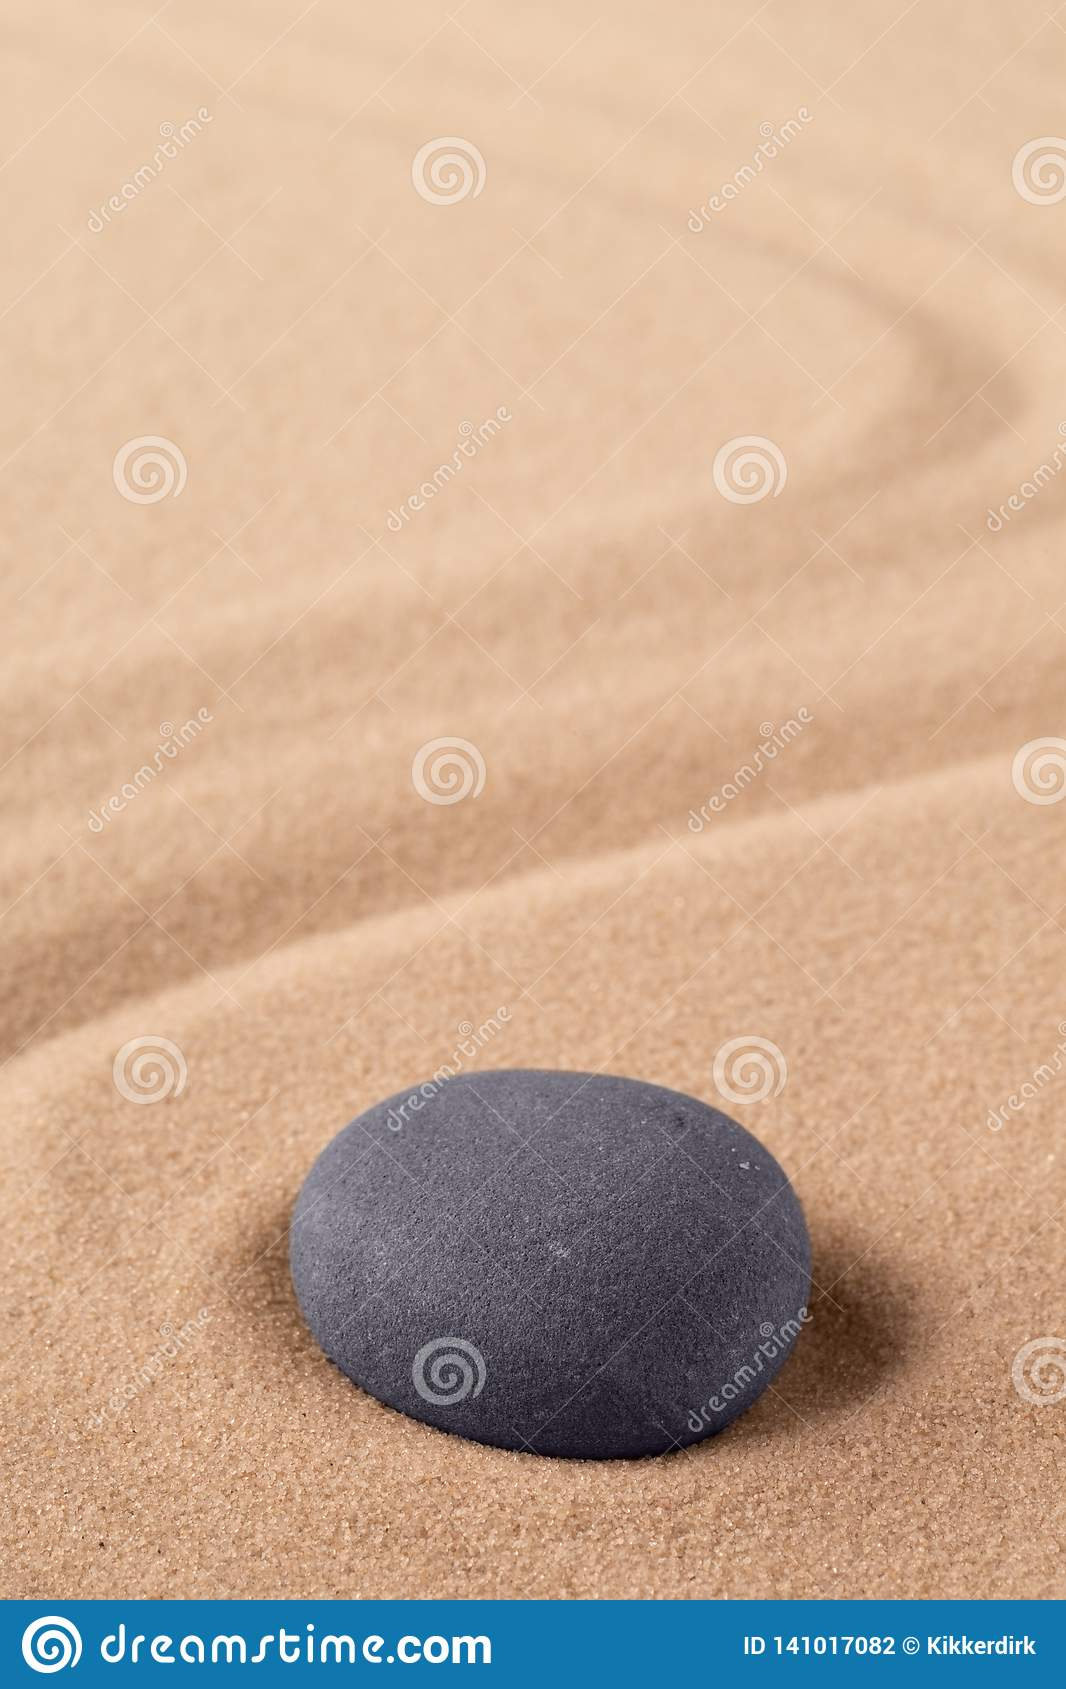 Zen meditation stone to focus and concentrate for a quit peace of mind